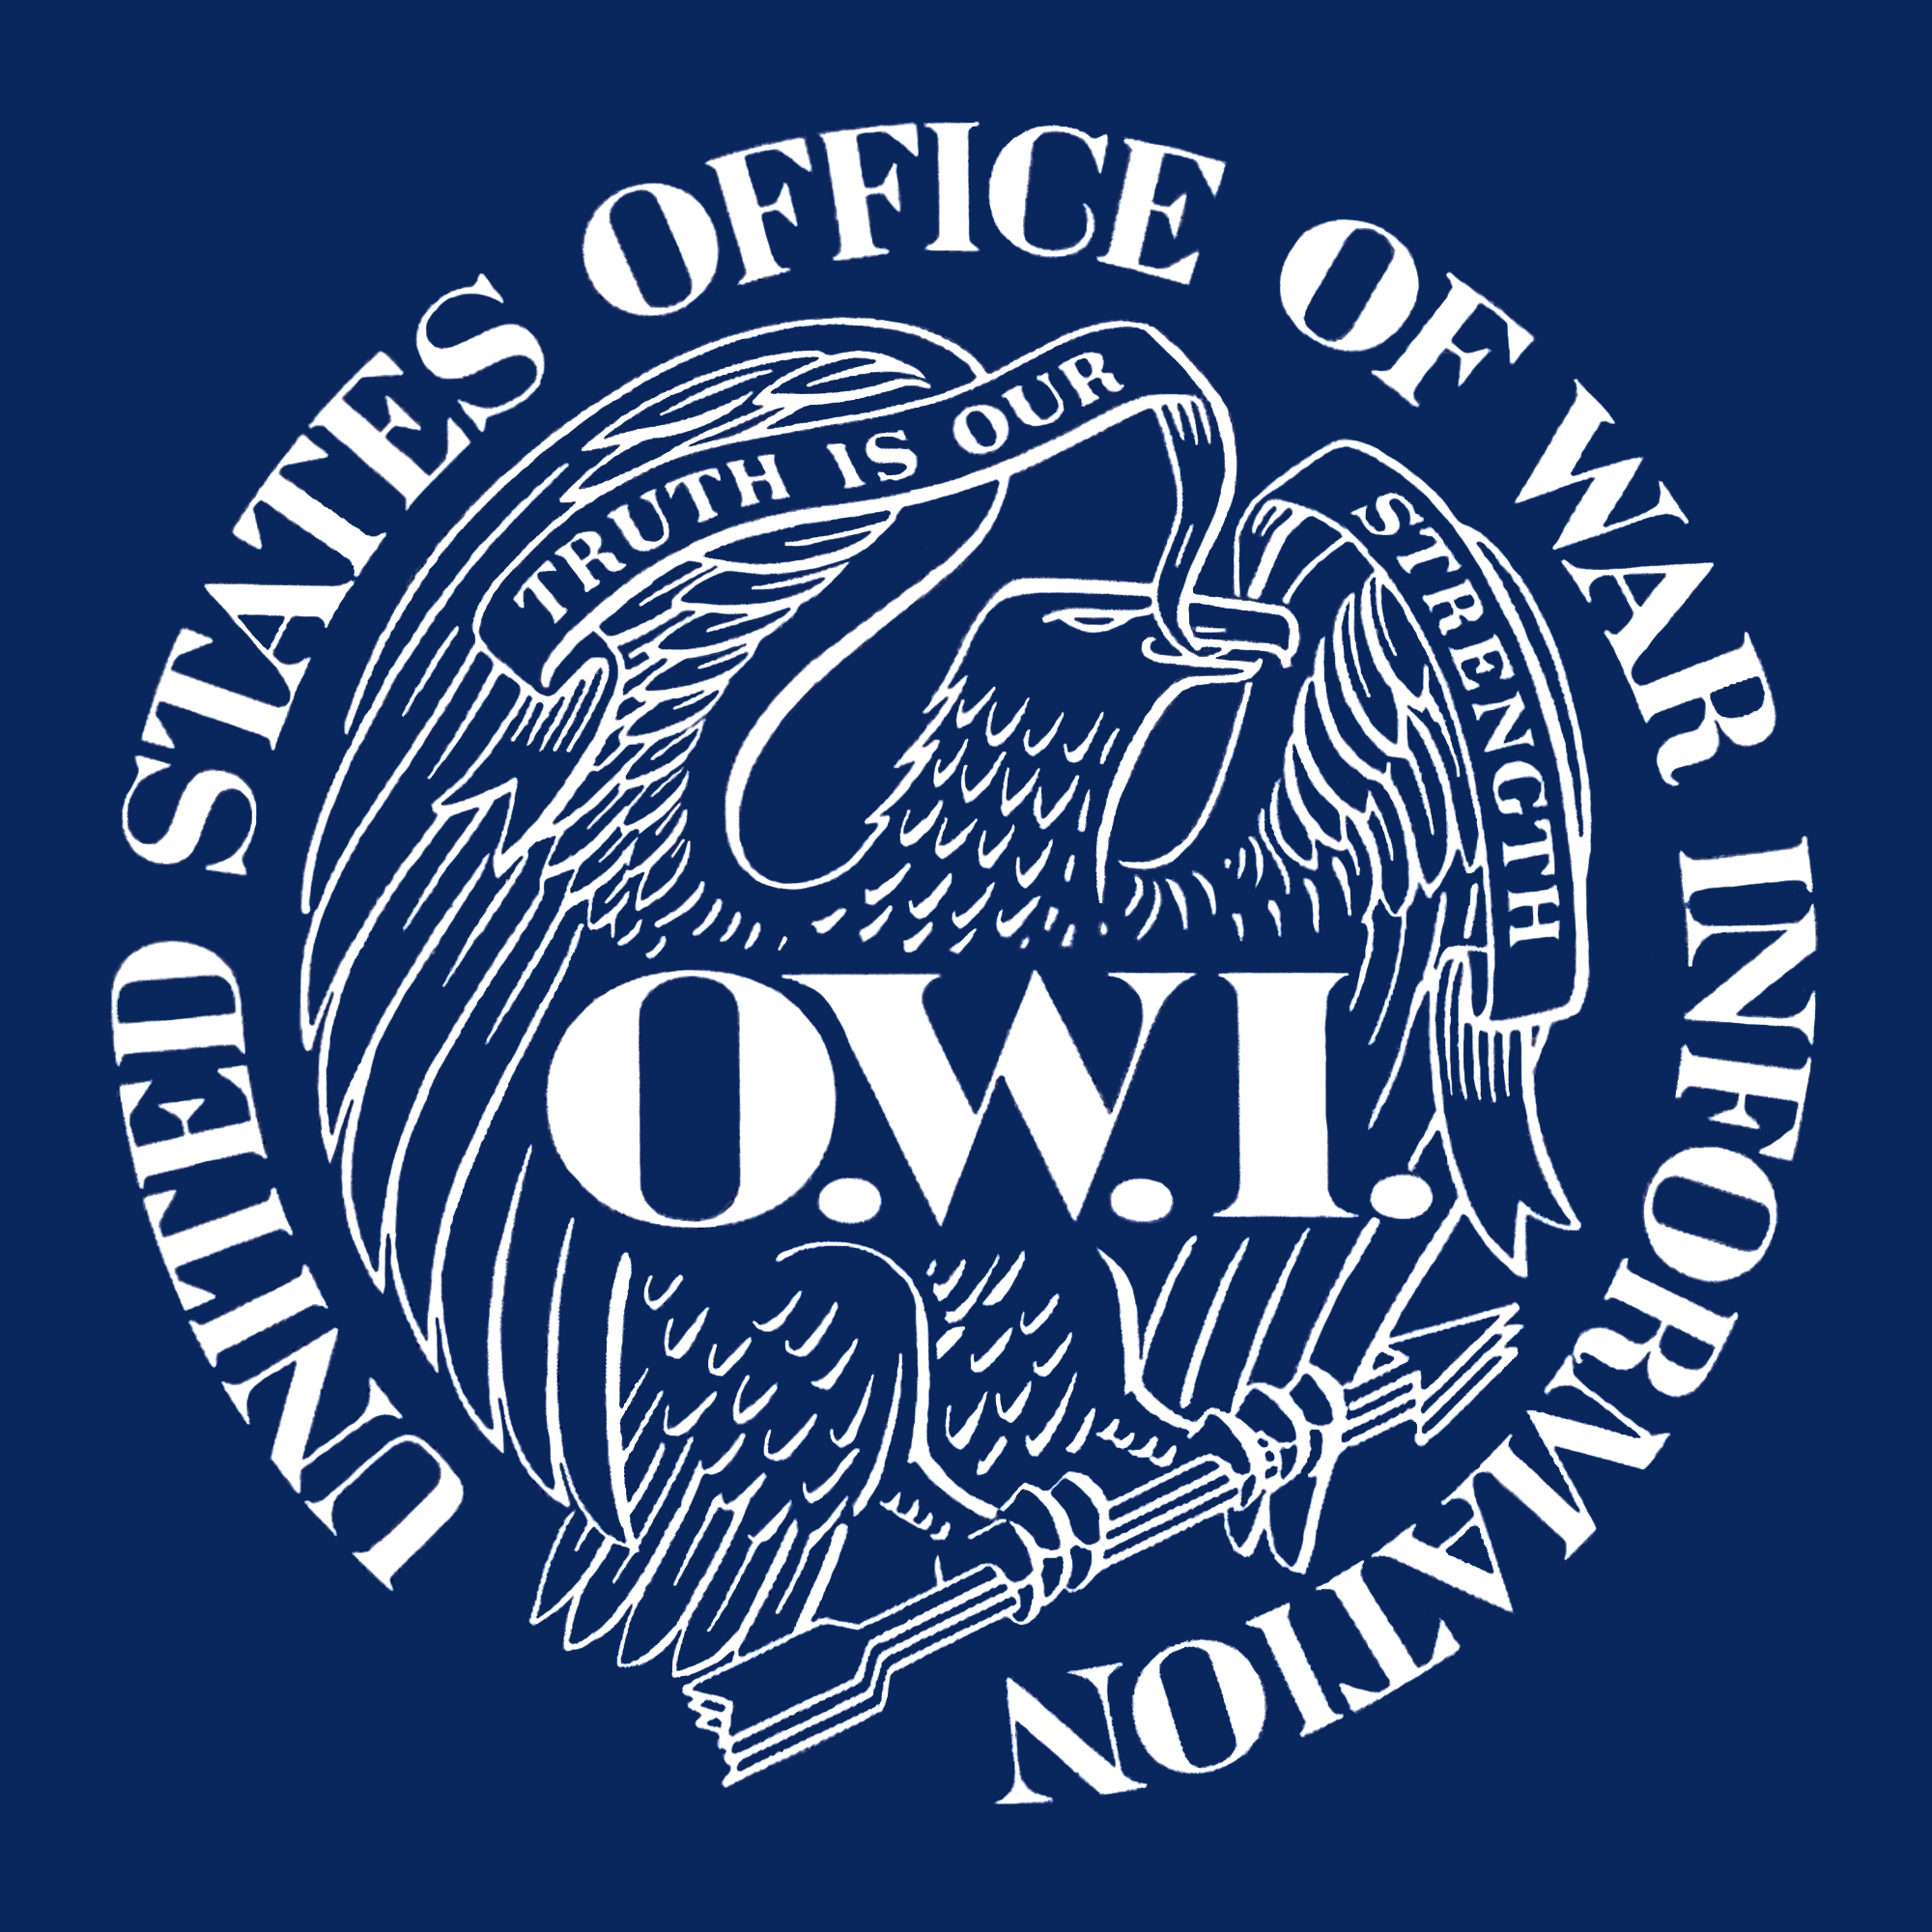 Image of United States Office of War Information from Wikidata